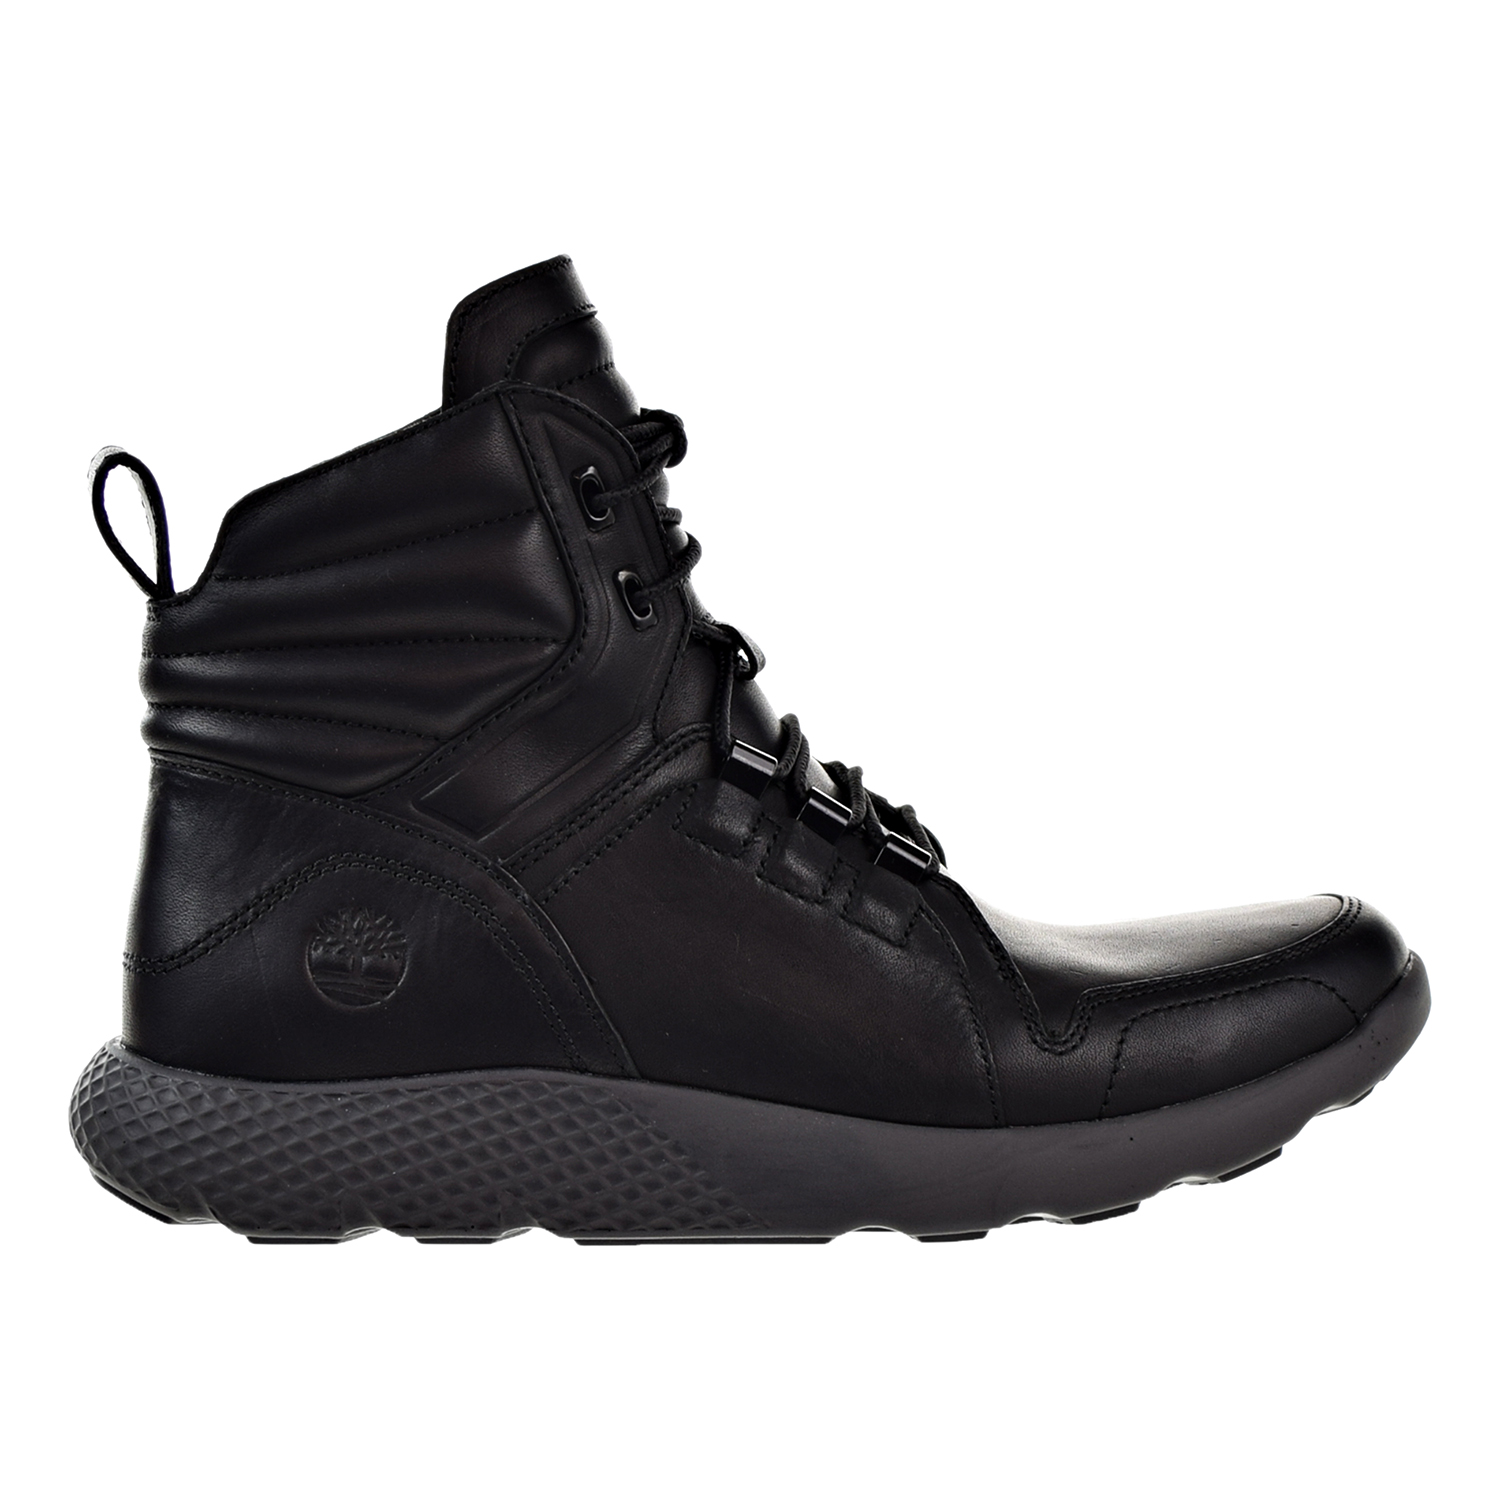 Timberland Flyroam Leather Men's Boots Black tb0a1j1a by Timberland